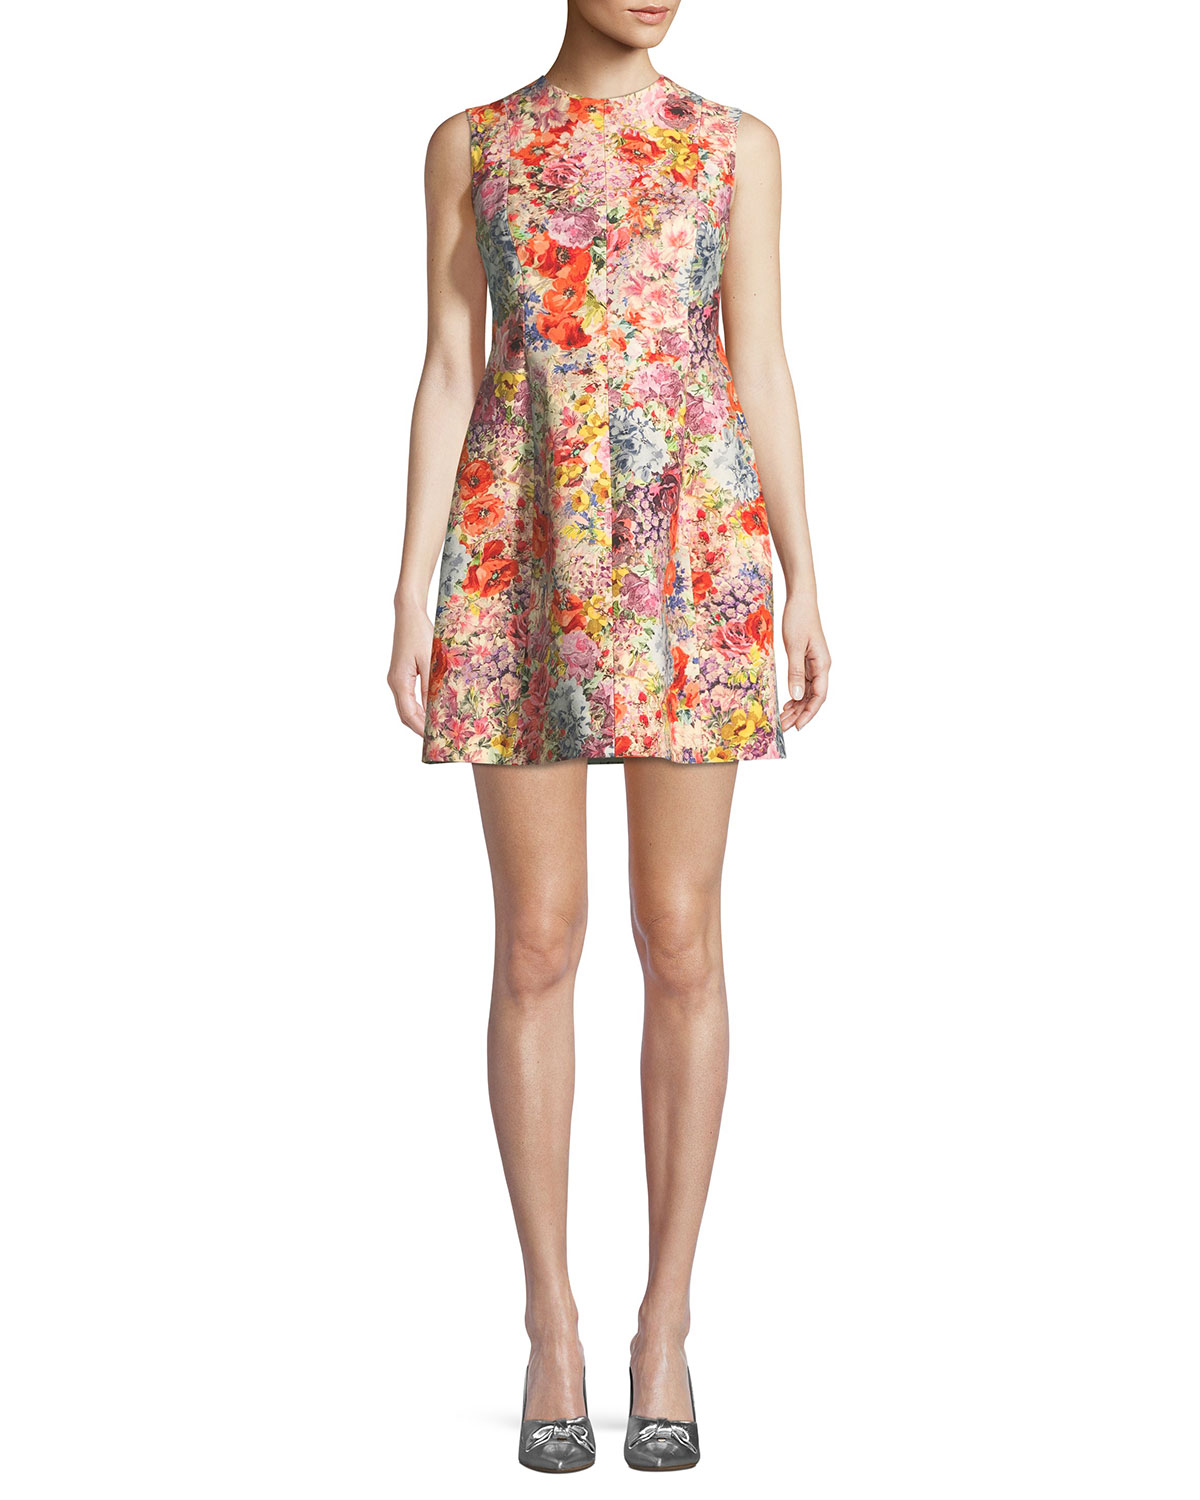 34ec1f588ba2 Valentino Sleeveless Crepe Fit-and-Flare Floral-Print Dress